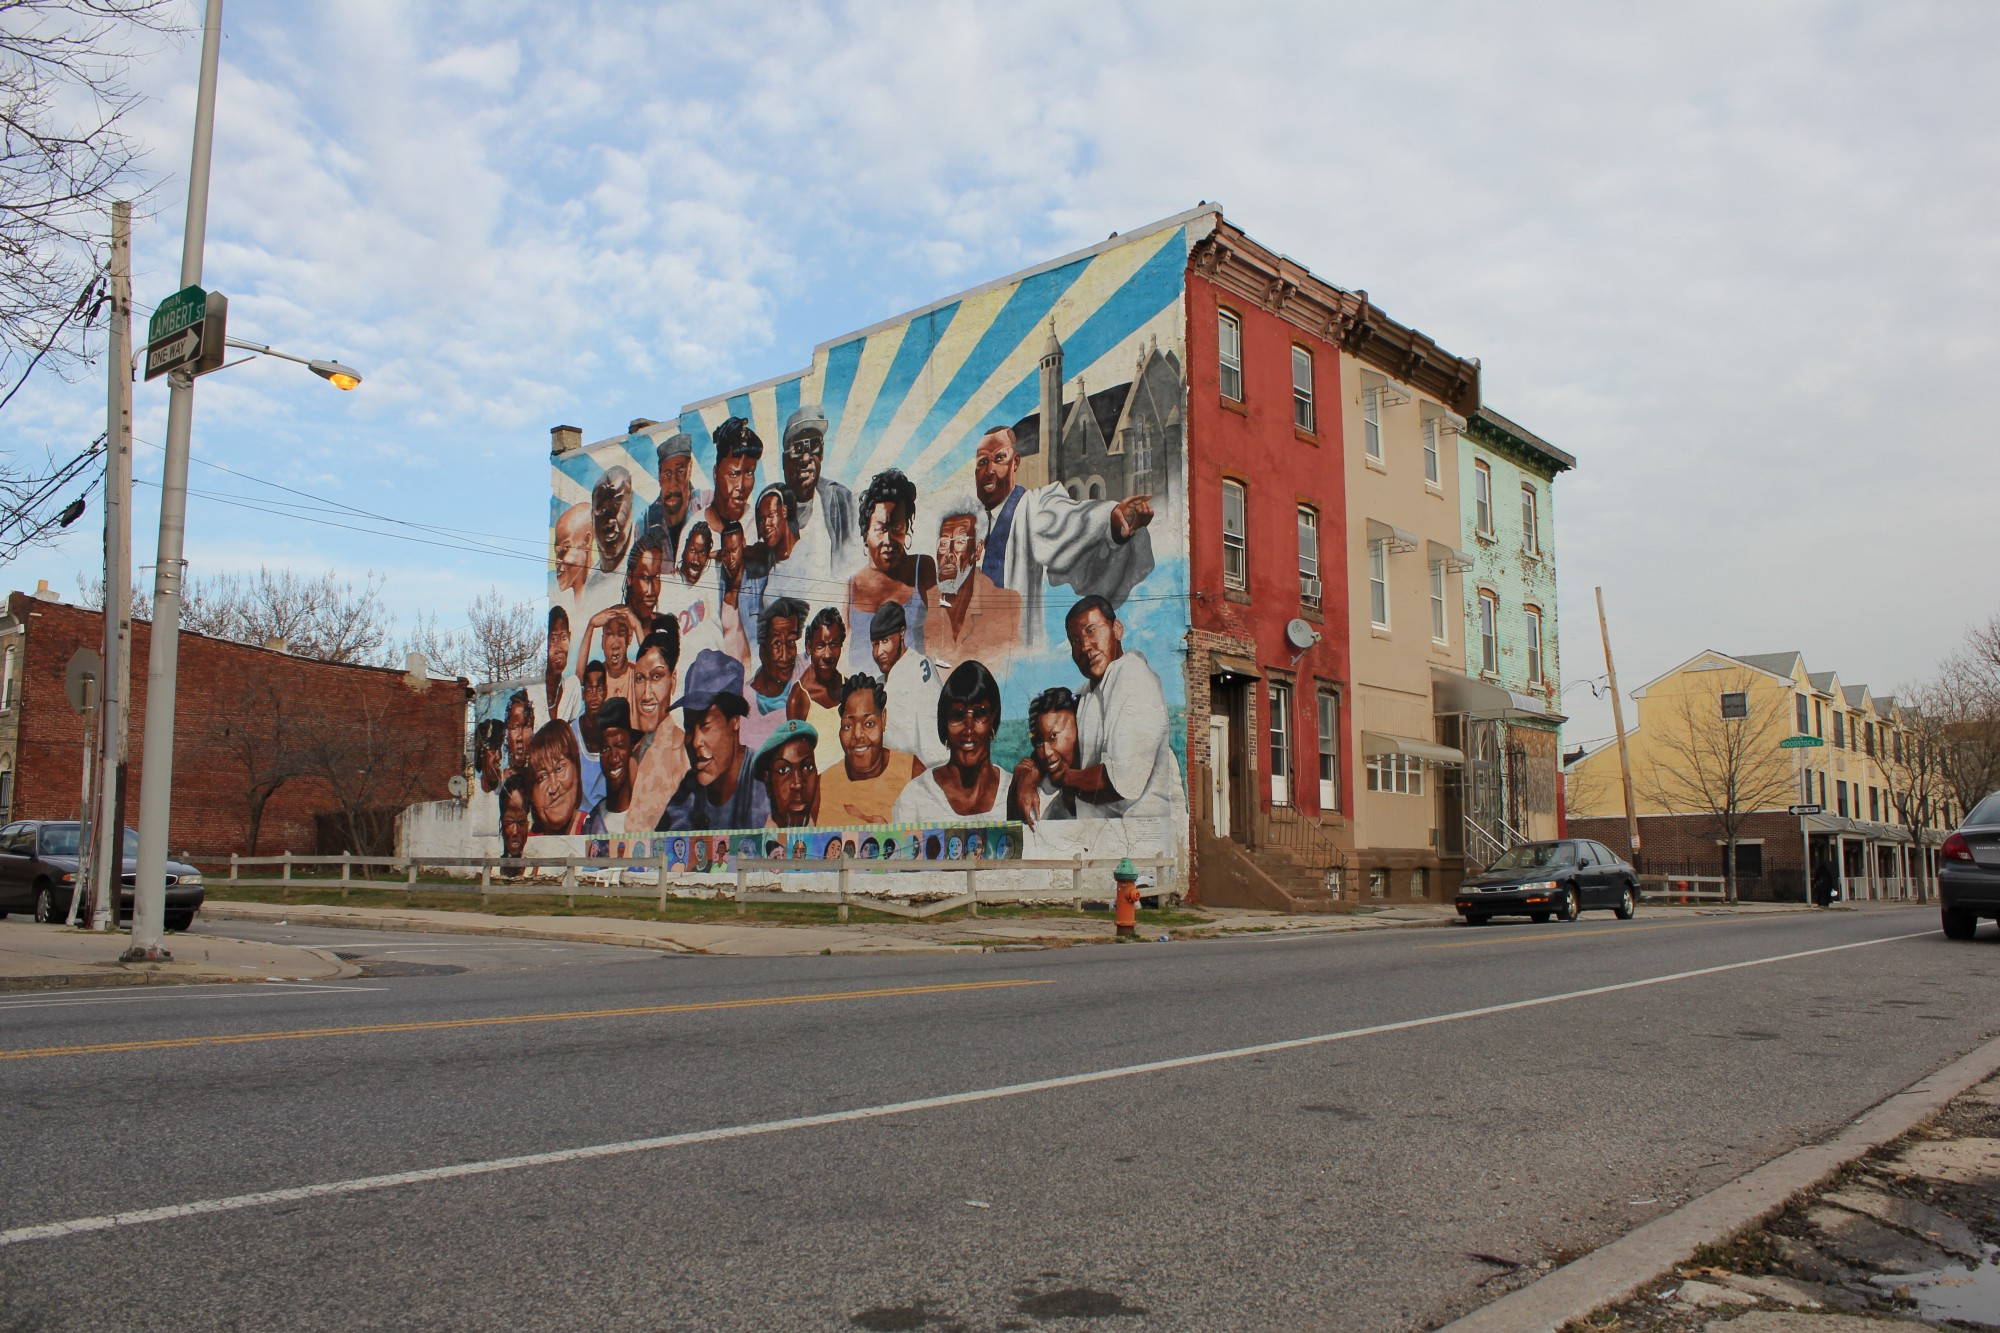 Sites of civil rights struggle in the city of philadelphia for City of philadelphia mural arts program